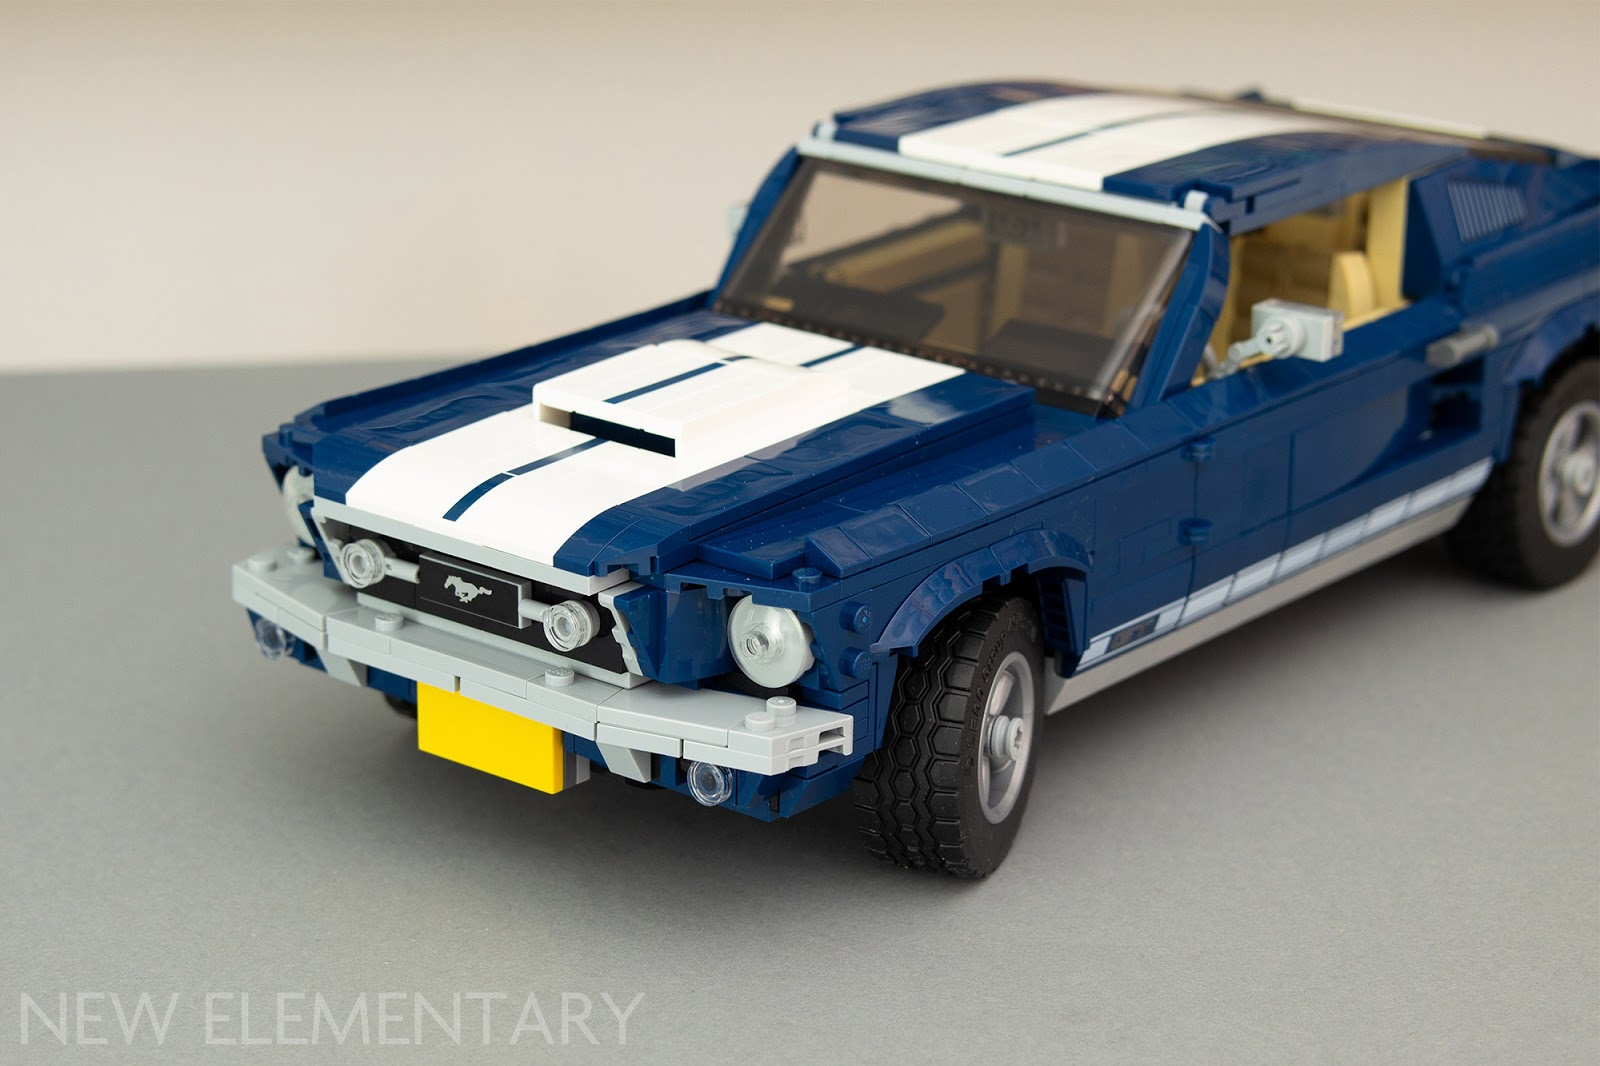 Lego Ford Mustang : lego creator review 10265 ford mustang new elementary a lego blog of parts ~ Aude.kayakingforconservation.com Haus und Dekorationen